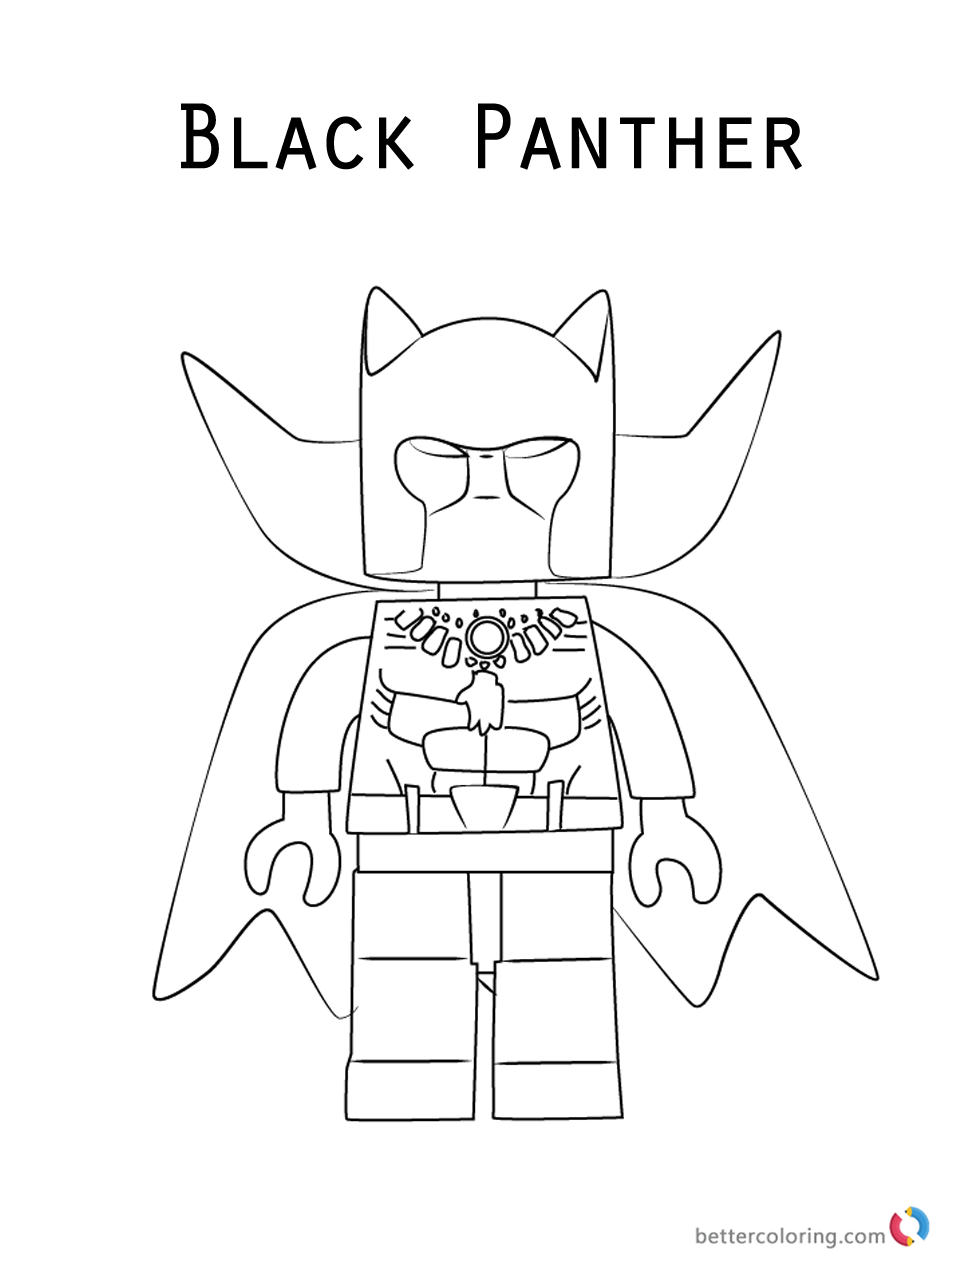 Black Panther LEGO Coloring Pages - Free Printable Coloring Pages